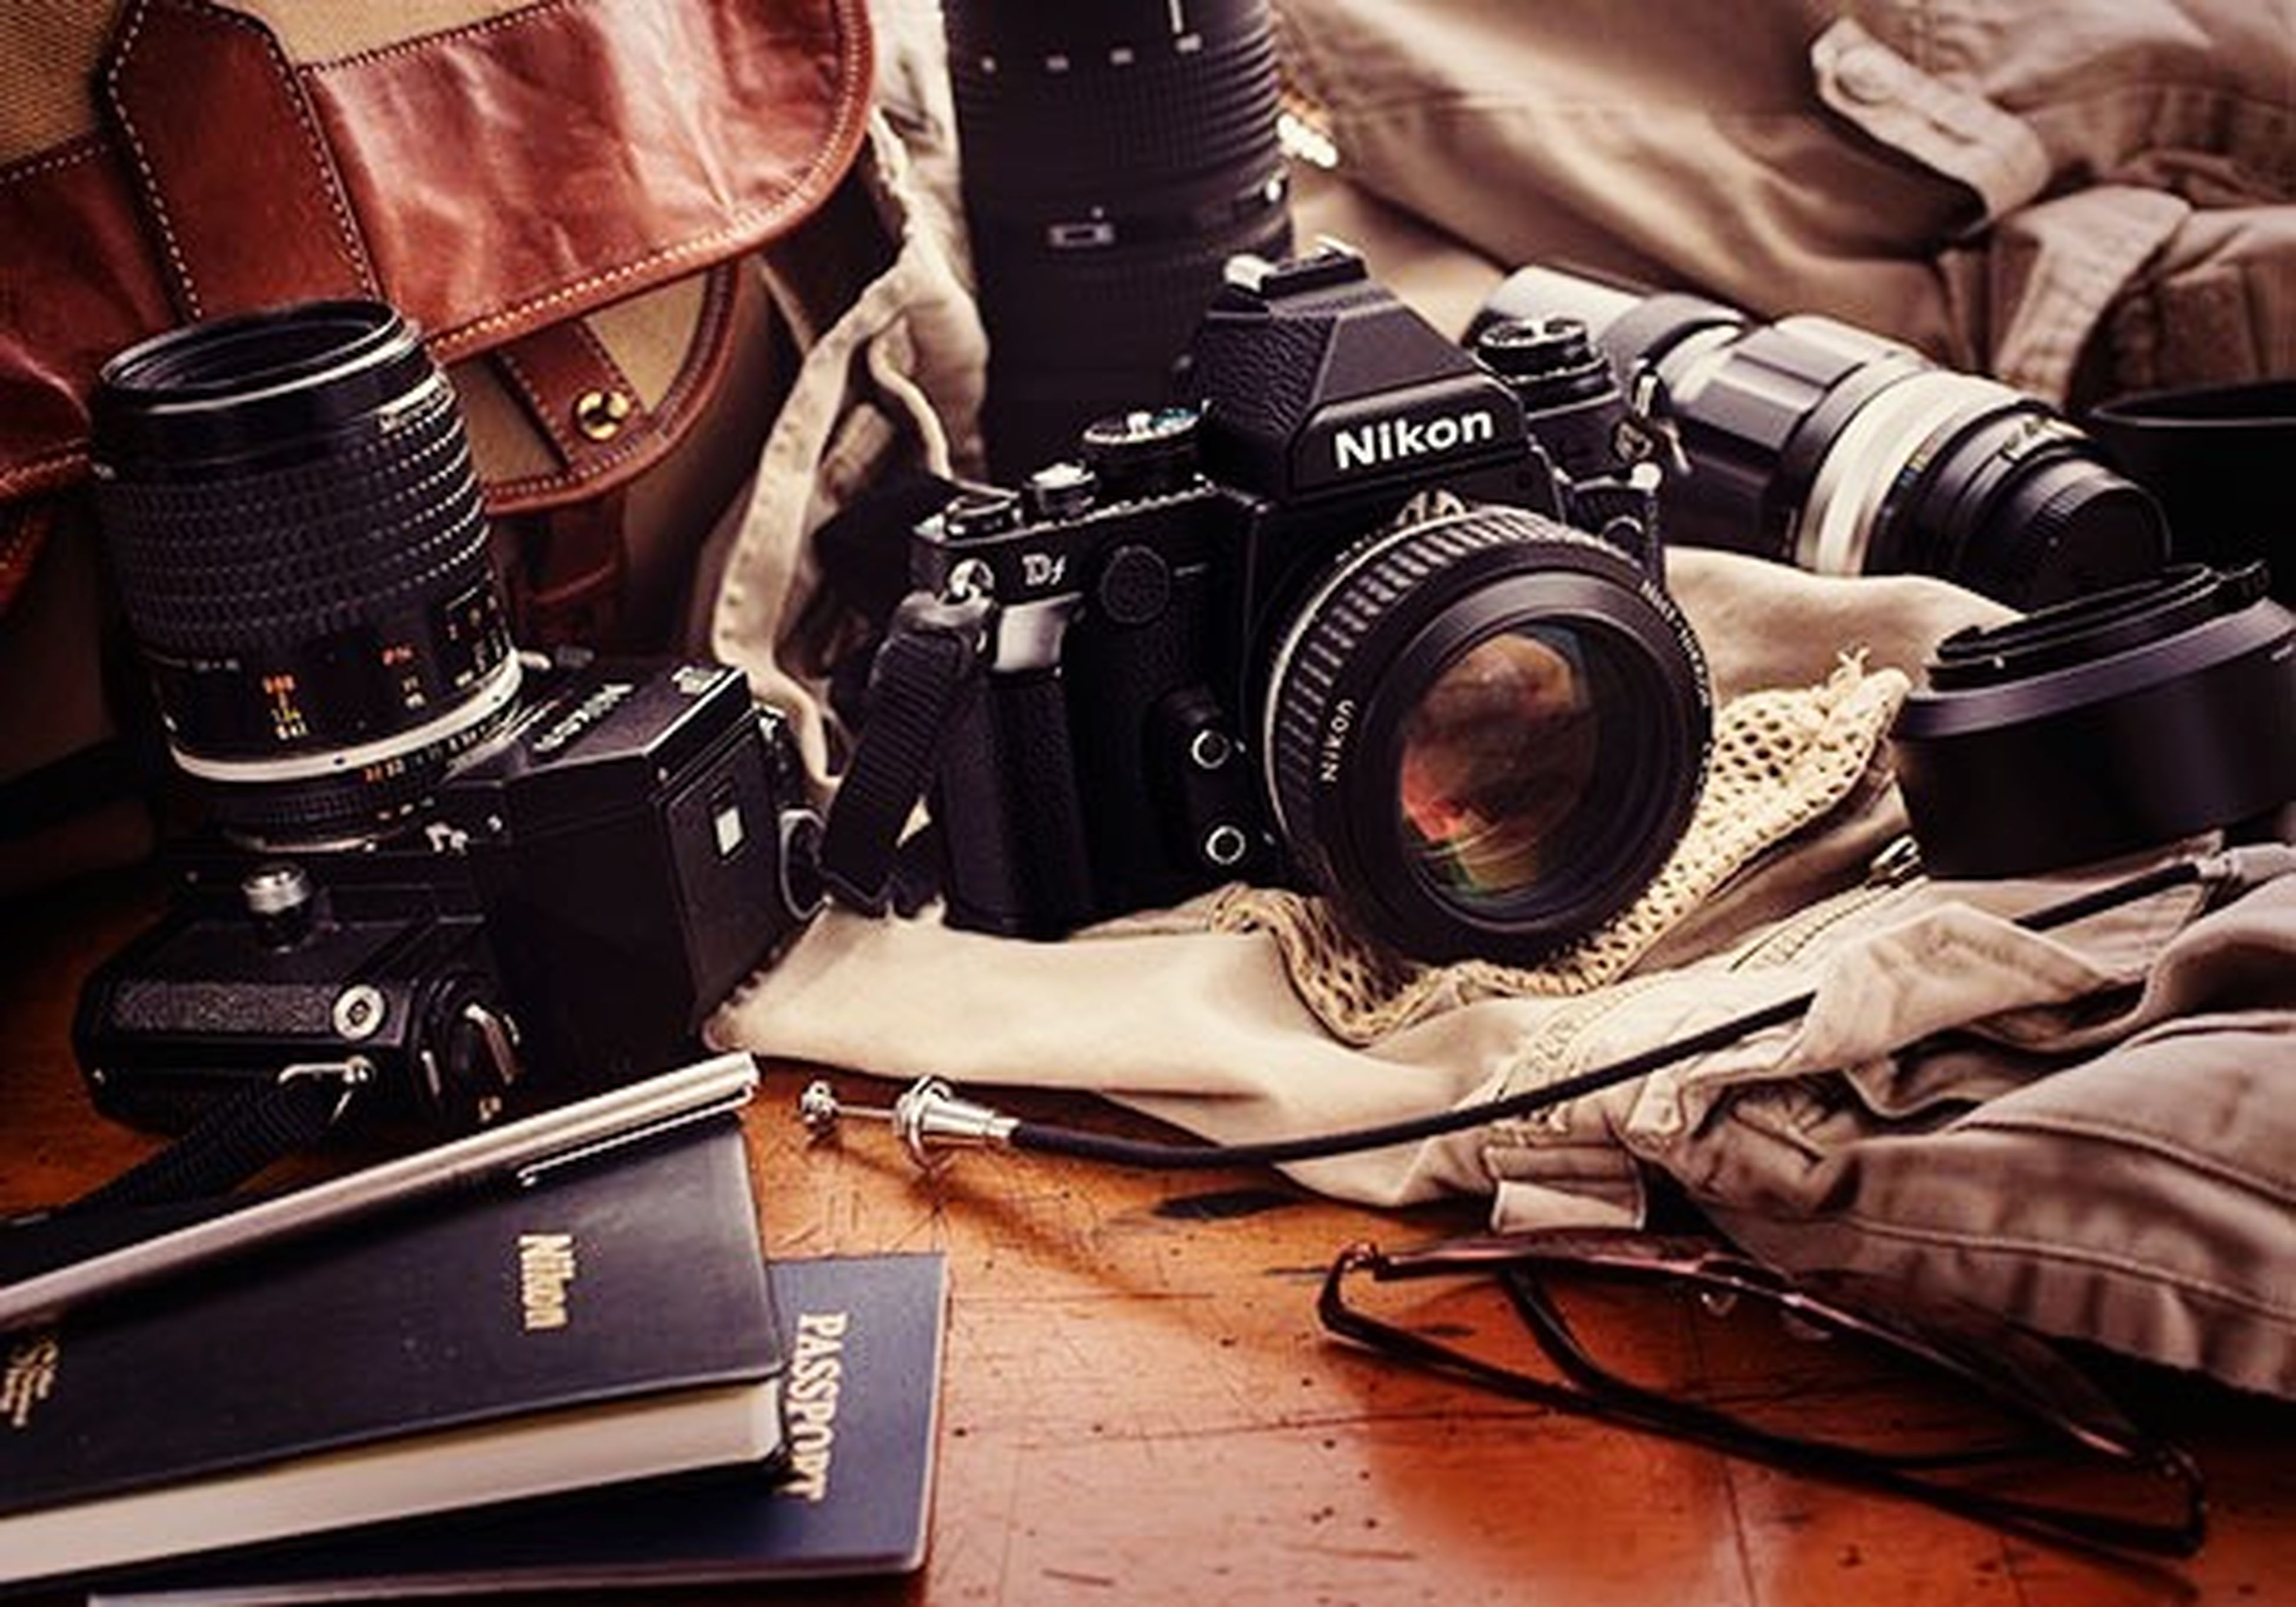 indoors, technology, close-up, equipment, high angle view, retro styled, still life, part of, music, old-fashioned, photography themes, working, camera - photographic equipment, machinery, table, musical instrument, work tool, communication, no people